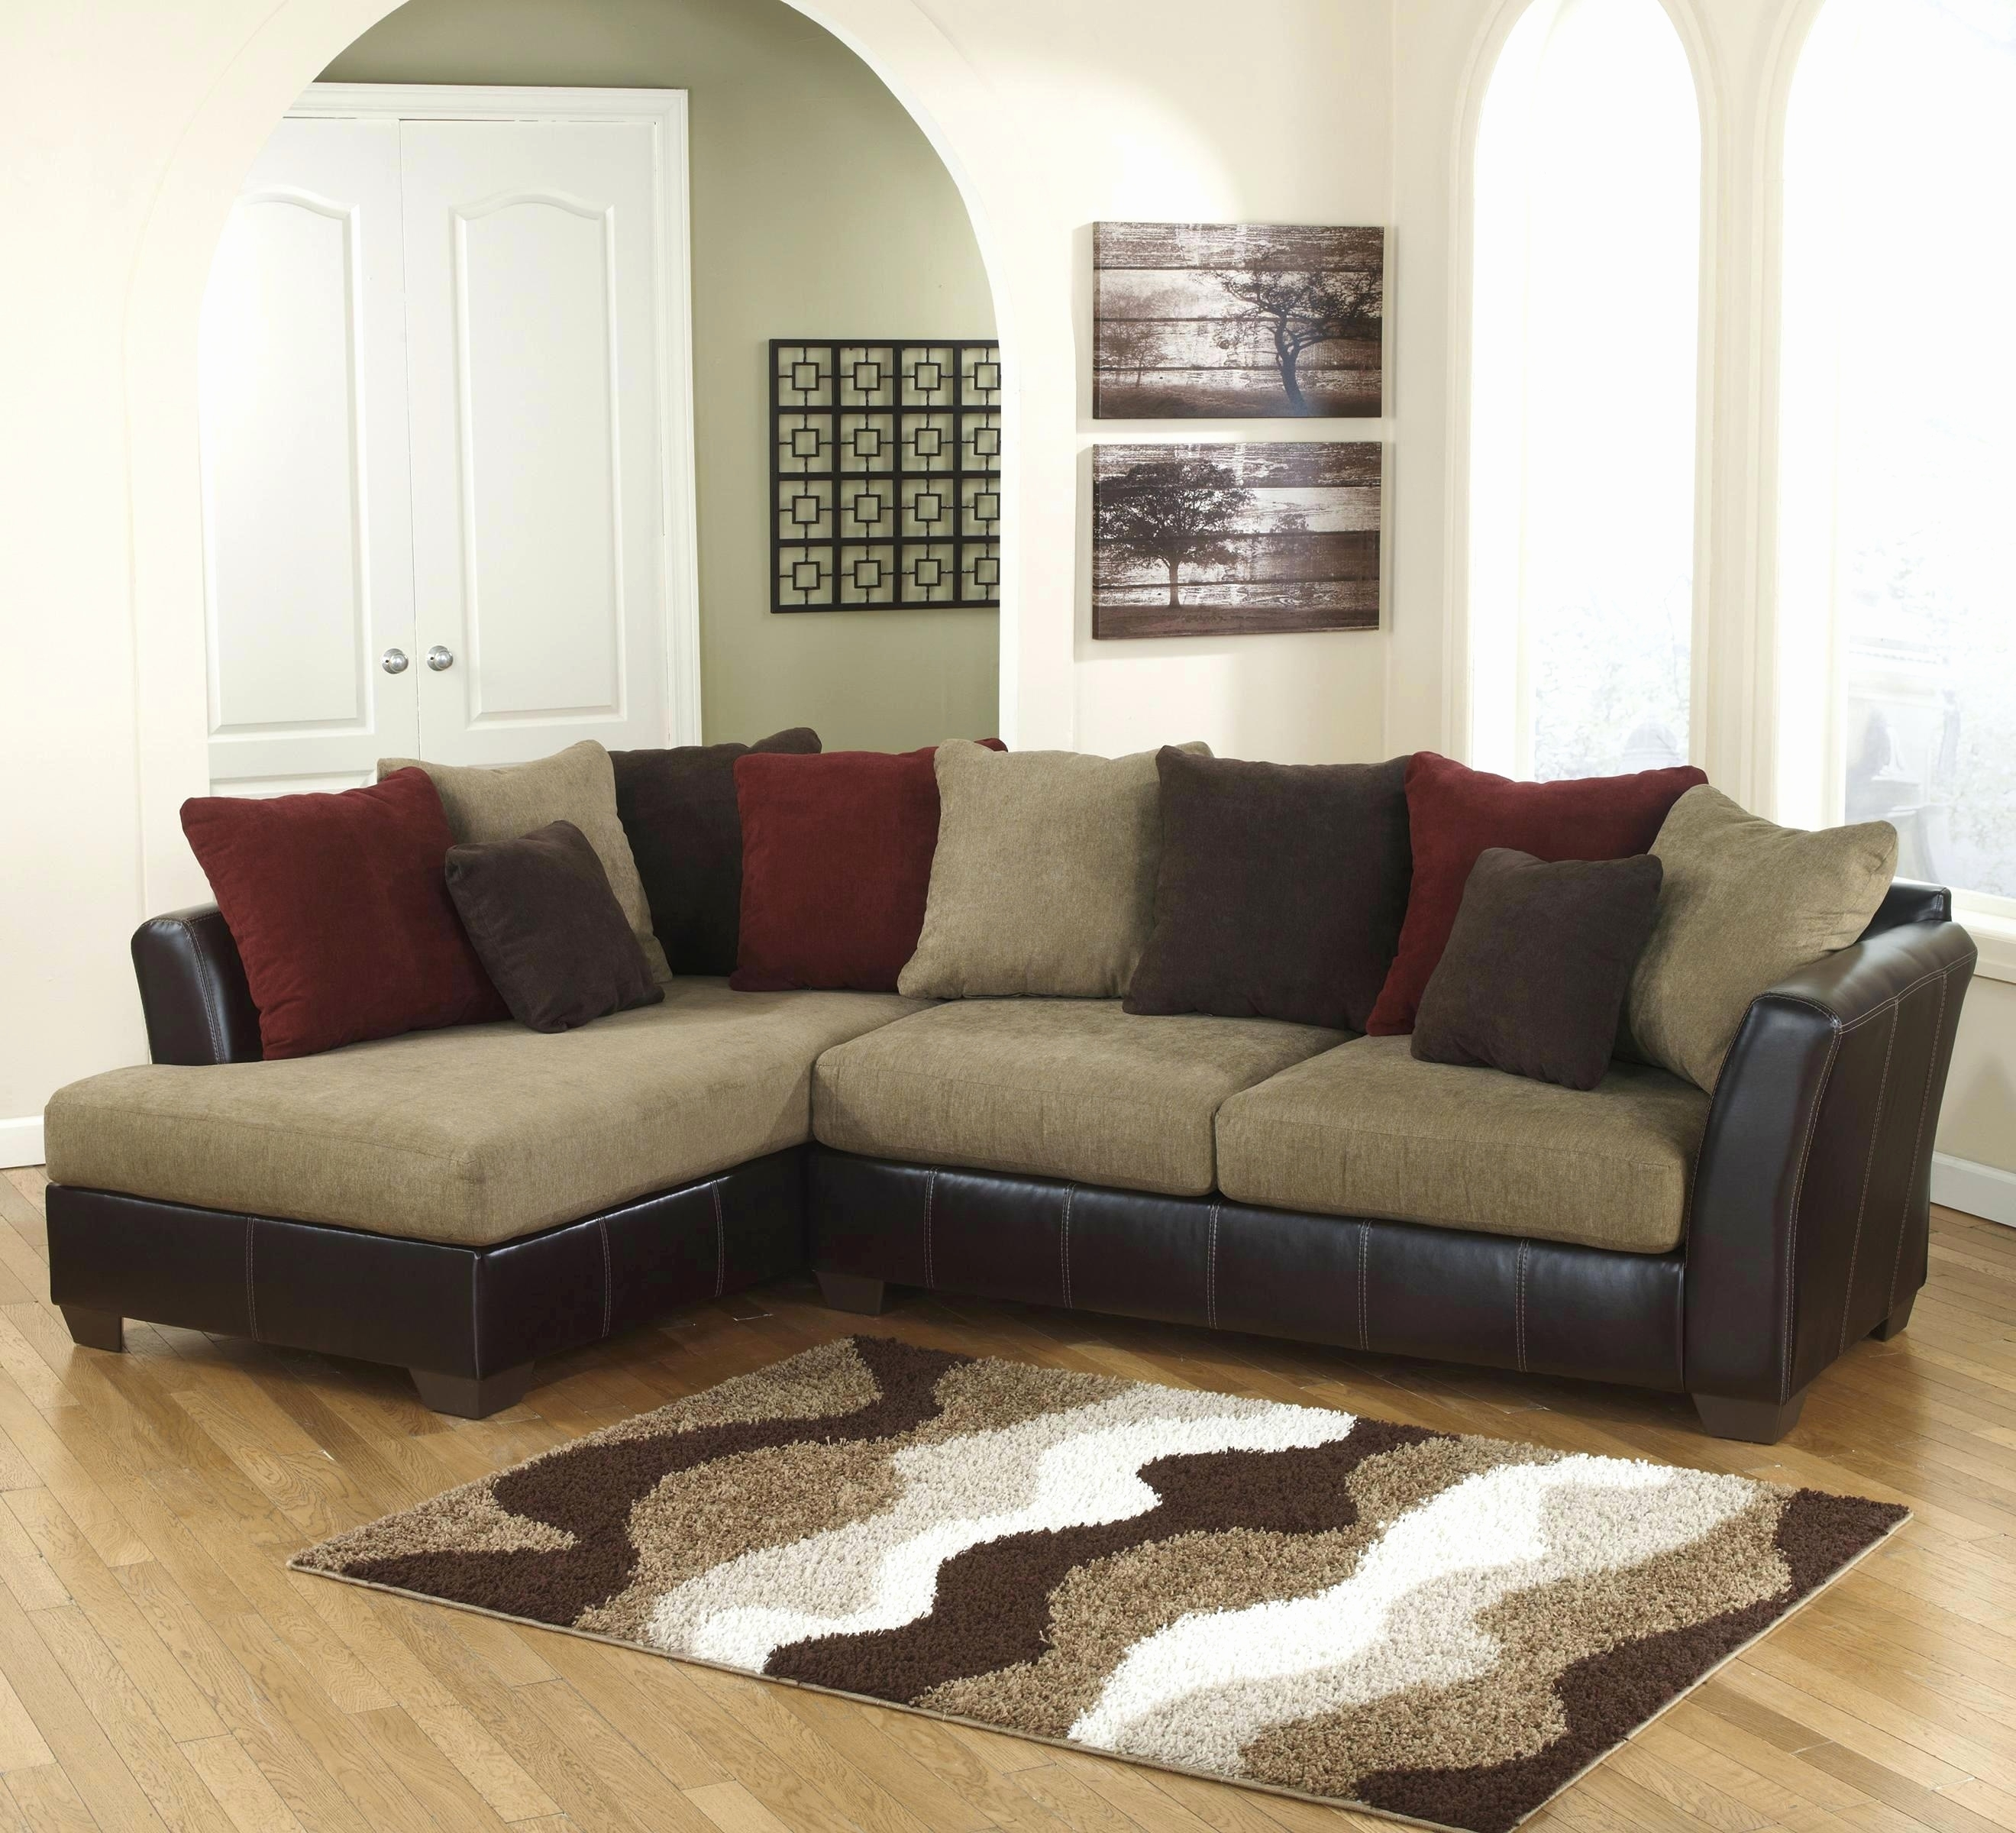 Furniture : New Ashley Furniture Sectional Sofas 2018 E28093 Couches for Sectional Sofas at Ashley (Image 10 of 15)